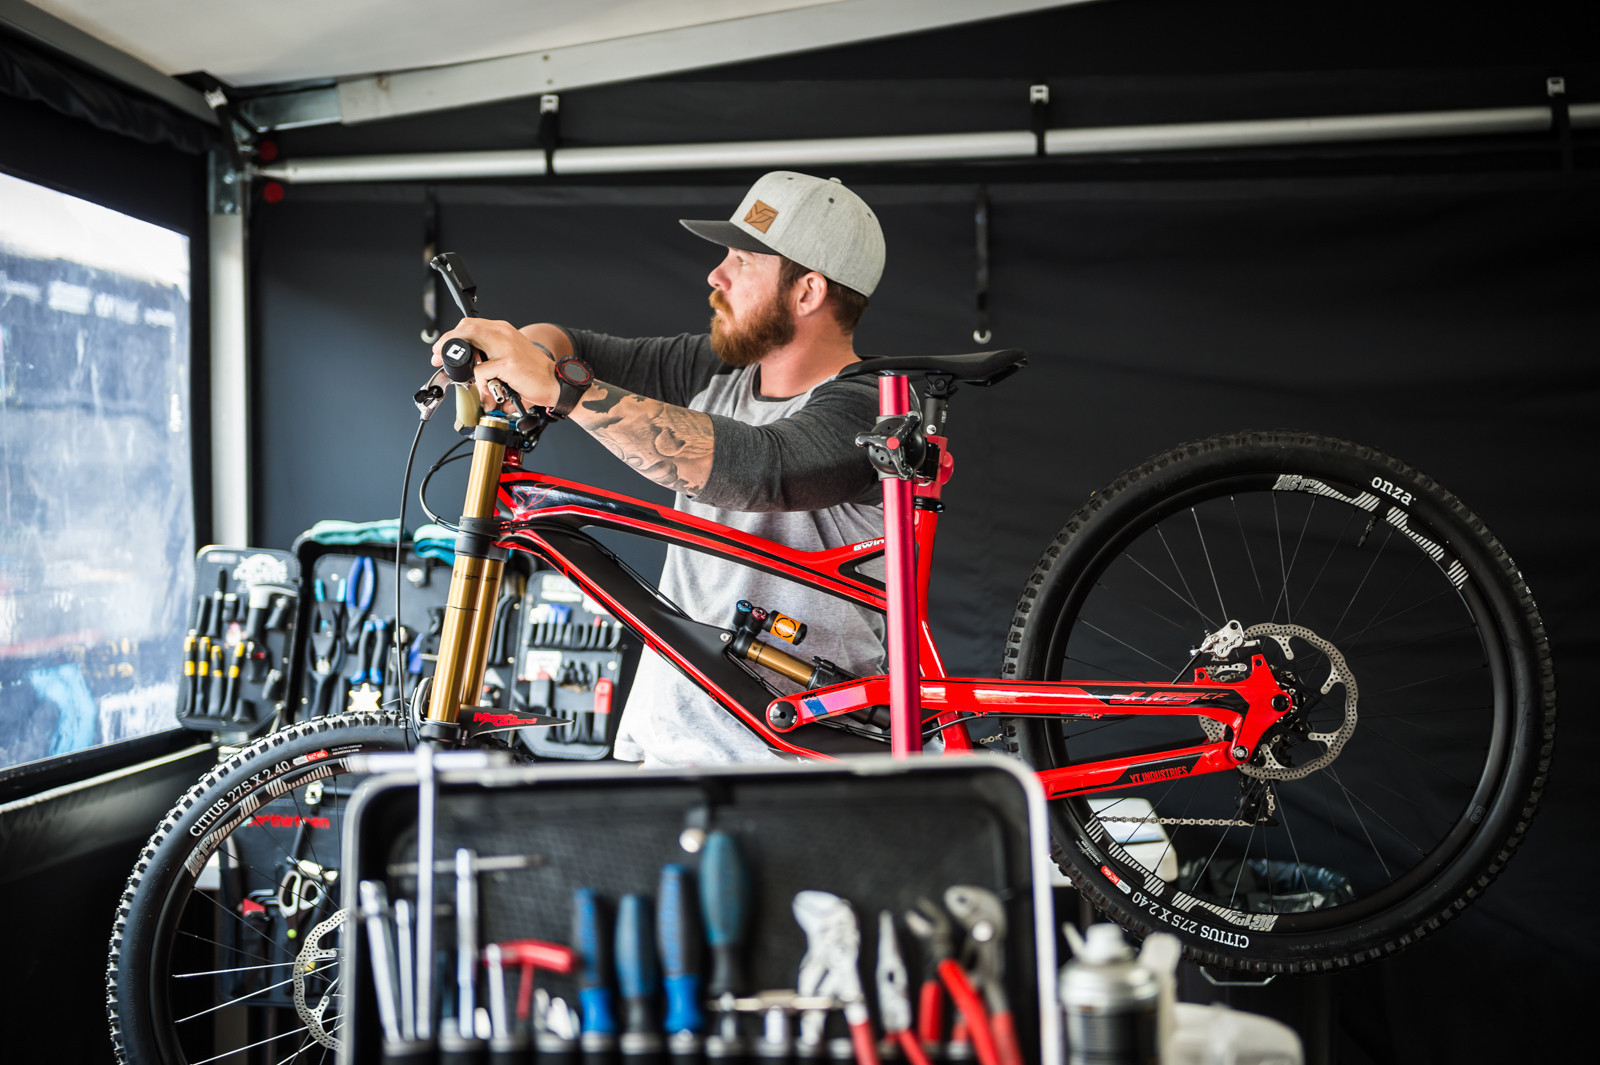 Gwin's mechanic, John Hall, with the new YT all built up for the first 2016 World Cup in Lourdes, France. Onza tires are present here, but we all know Gwin went on to win with sharpied Maxxis tires.